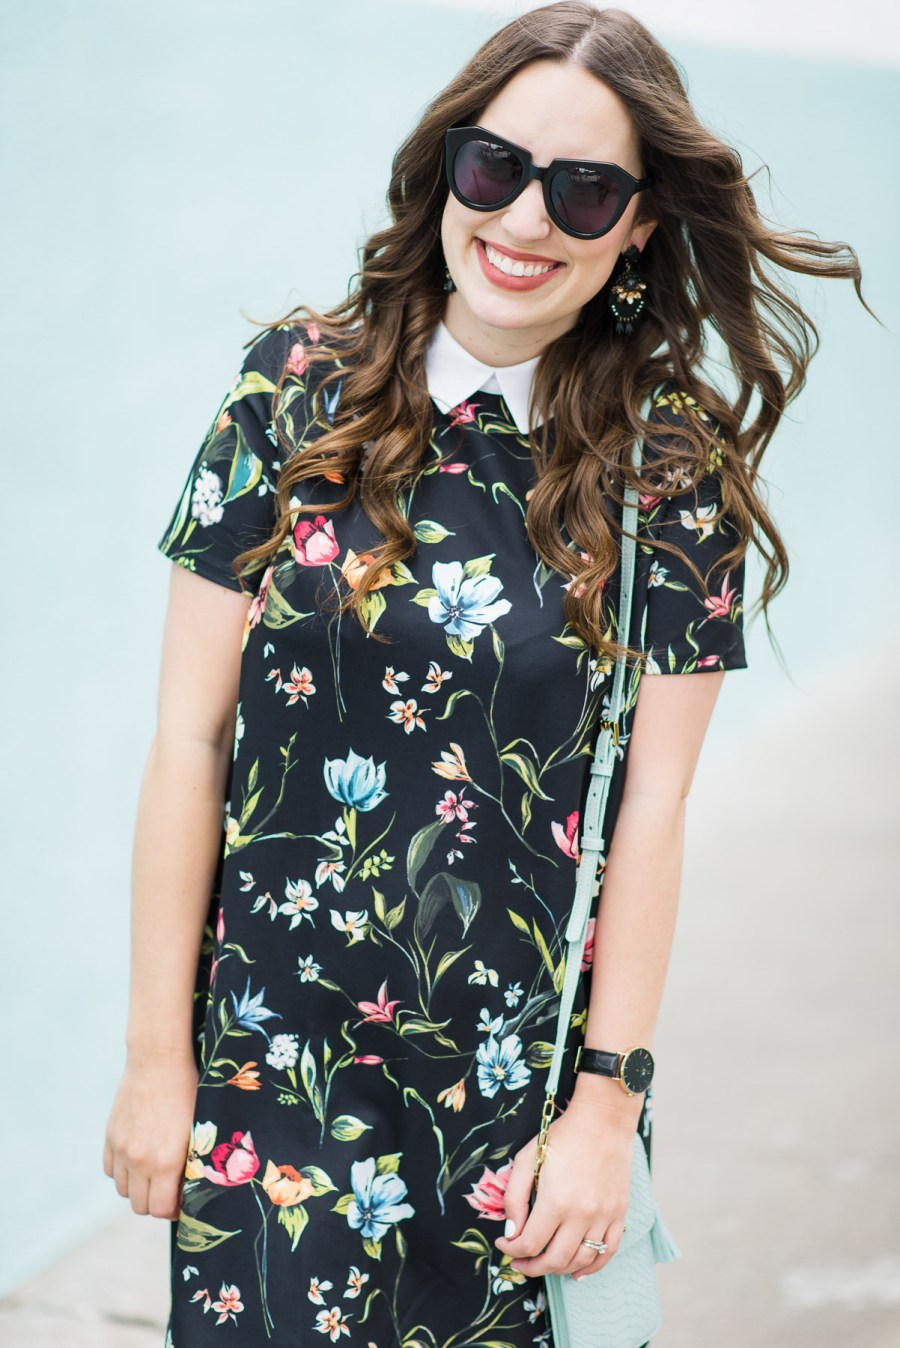 Floral_Shirt_Dress_Adidas_Sneakers-4